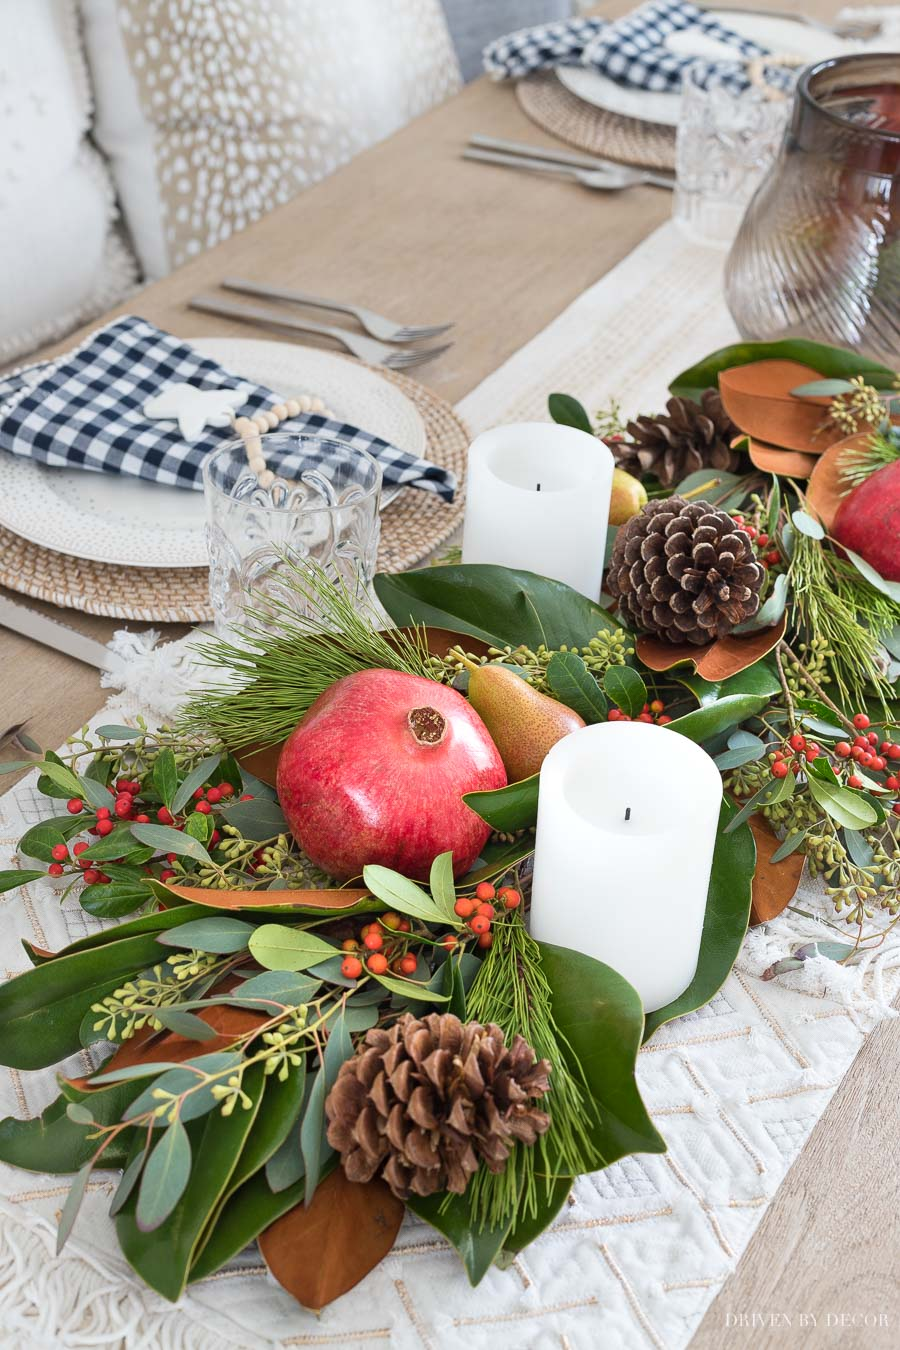 Simple how-to tips for creating your own fresh greenery table runner!